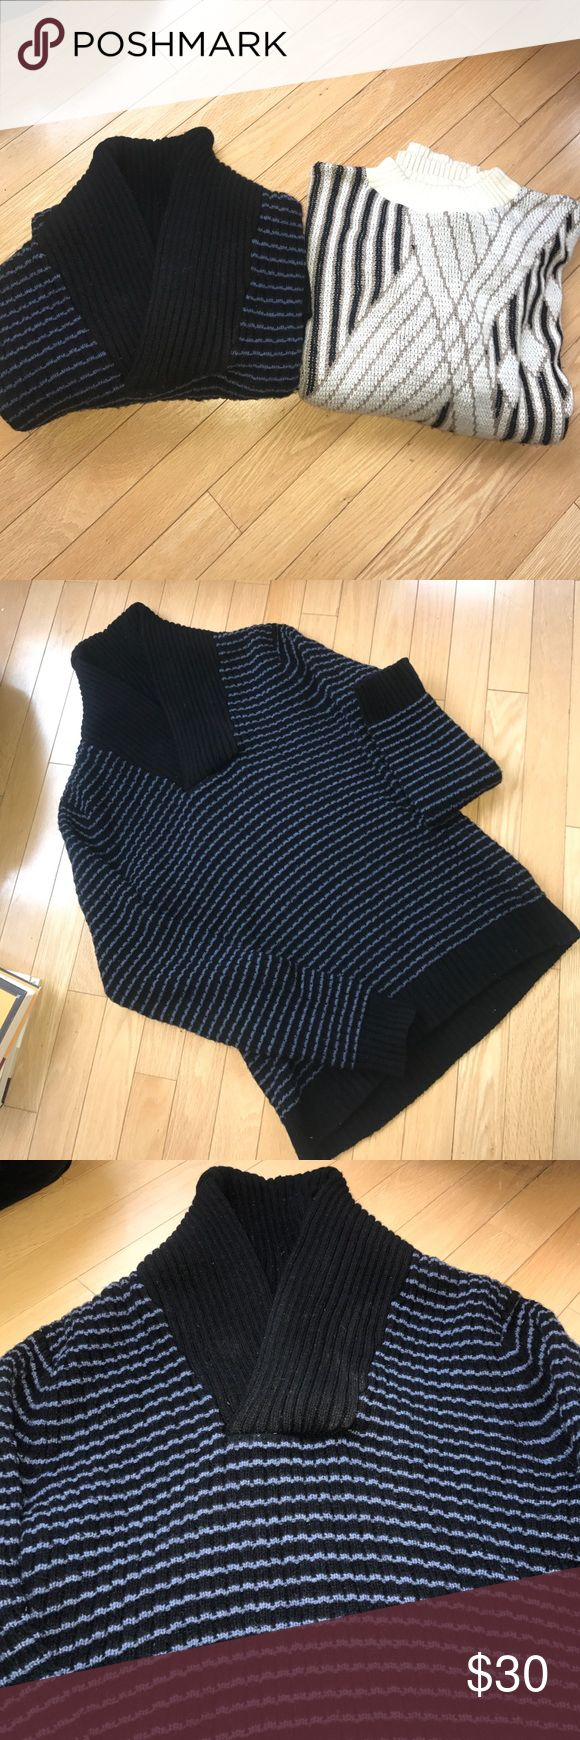 Men's  Pre - loved Sweater Bundle ( 2 sweaters ) Men's  Pre - loved Sweater Bundle ( 2 sweaters )  1  Cowl collared H&M Blue and black sweater ( 80% Lambs Wool 20% Polyamide)  size Small . 1  Authentic Vintage Sweater  by Jaguar (100% Acrylic ) size Large ( Can fit a men's medium- looks to run small ) Both of these are pre loved with significant wear and tear including pillage  ( thus the price ) - I can post additional pics if requested . No Major damage found in either - both are wearable…